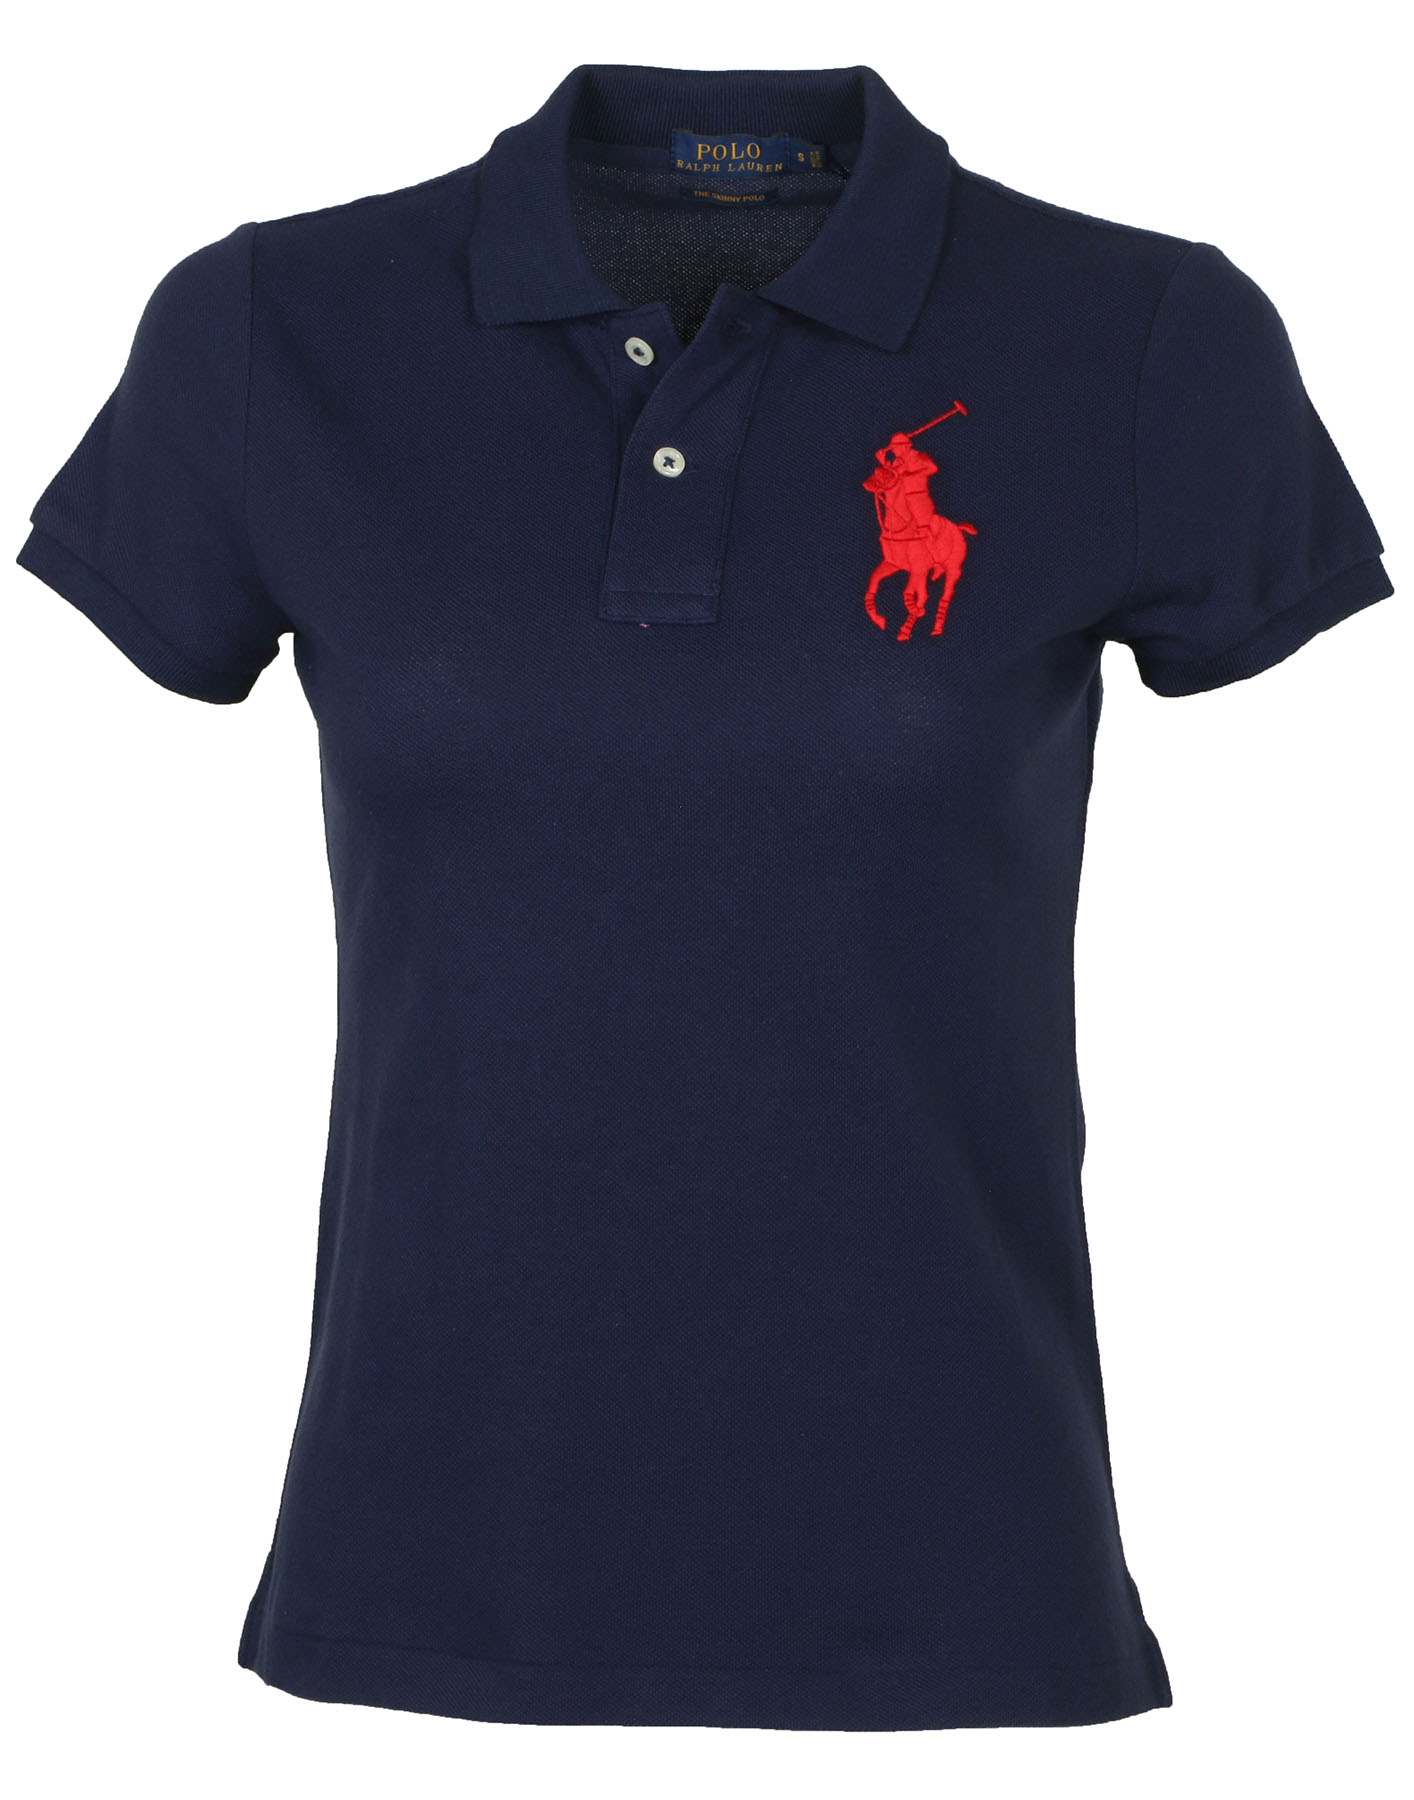 Polo Navy Skinny Ralph Big Mesh Ebay Pony Lauren Women's Shirt rrxP86